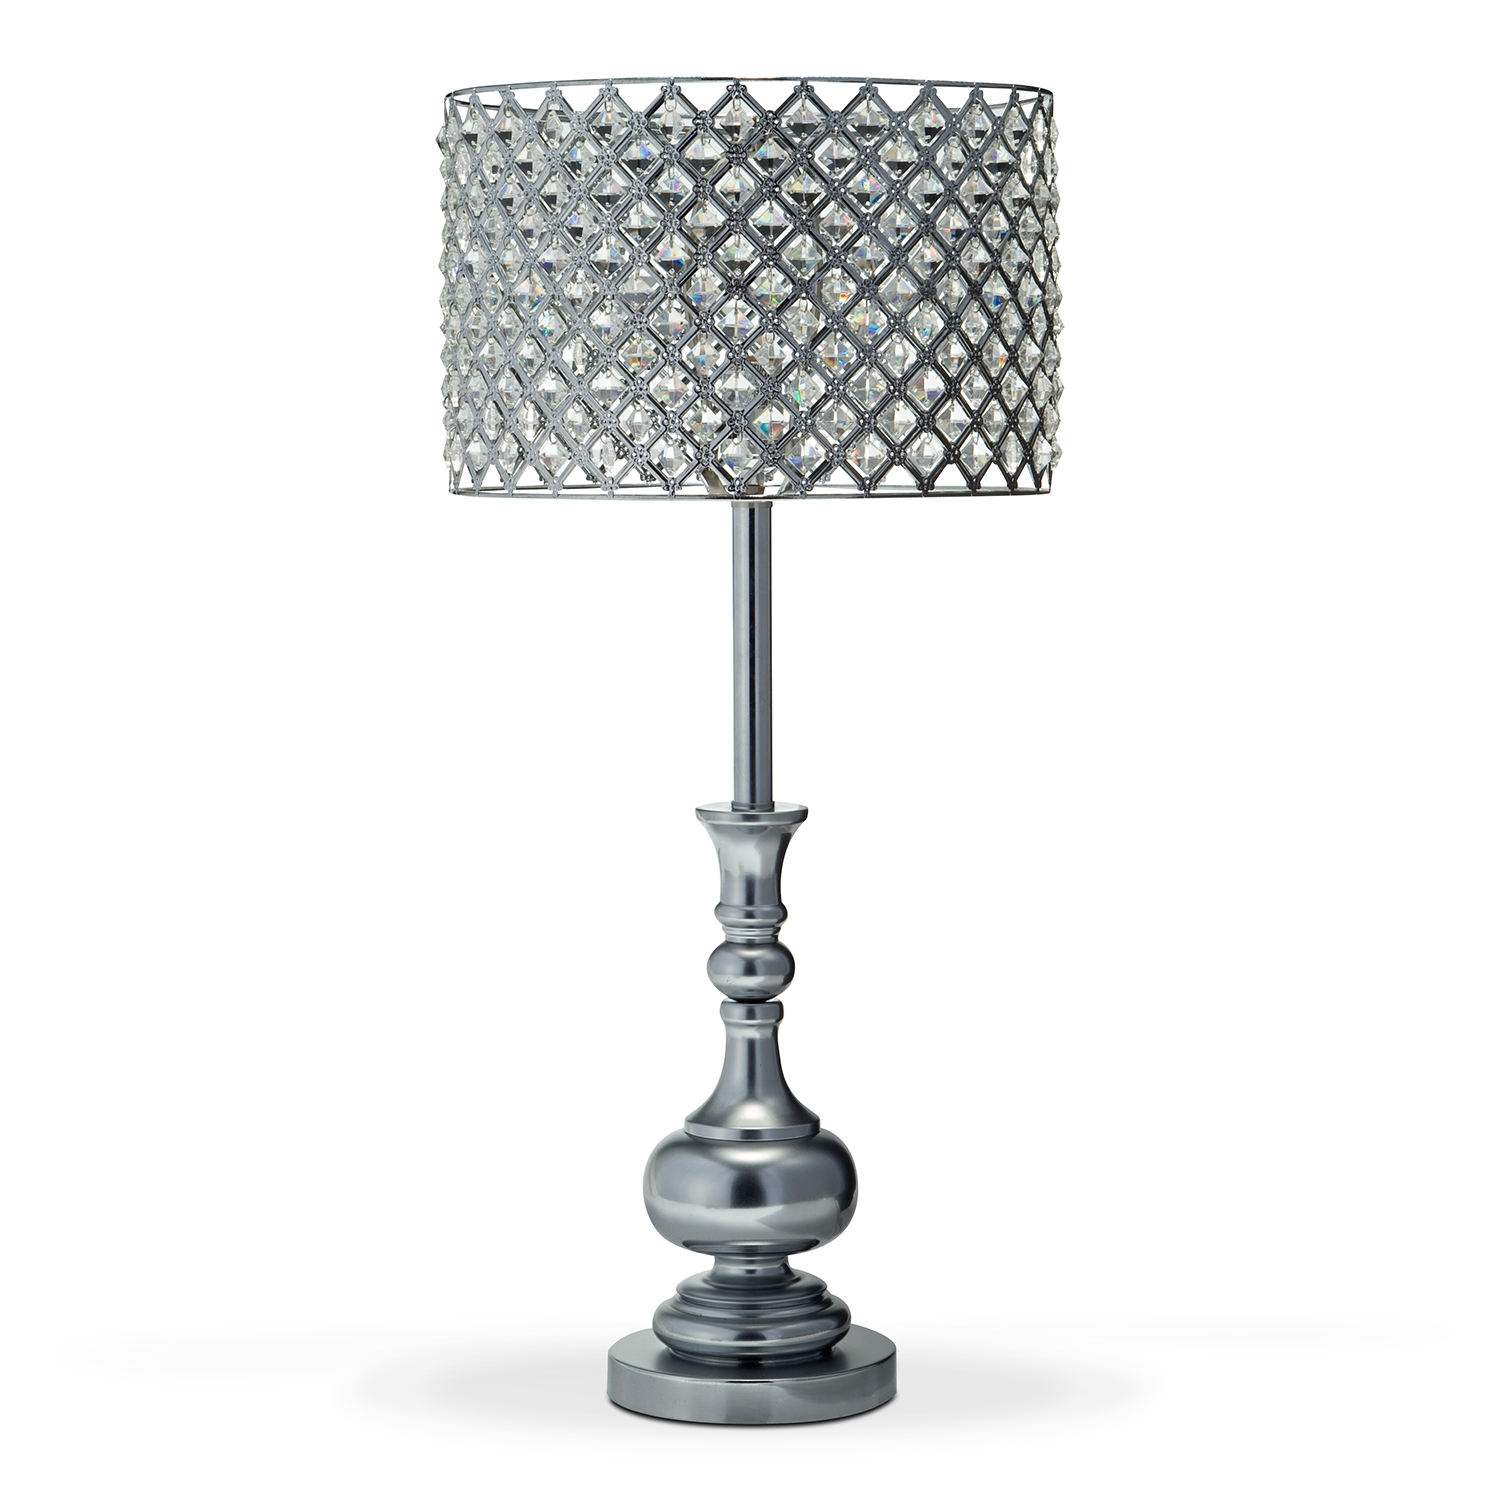 Crystal Chandelier Table Lamps: Bring Elegance And Beauty In Your